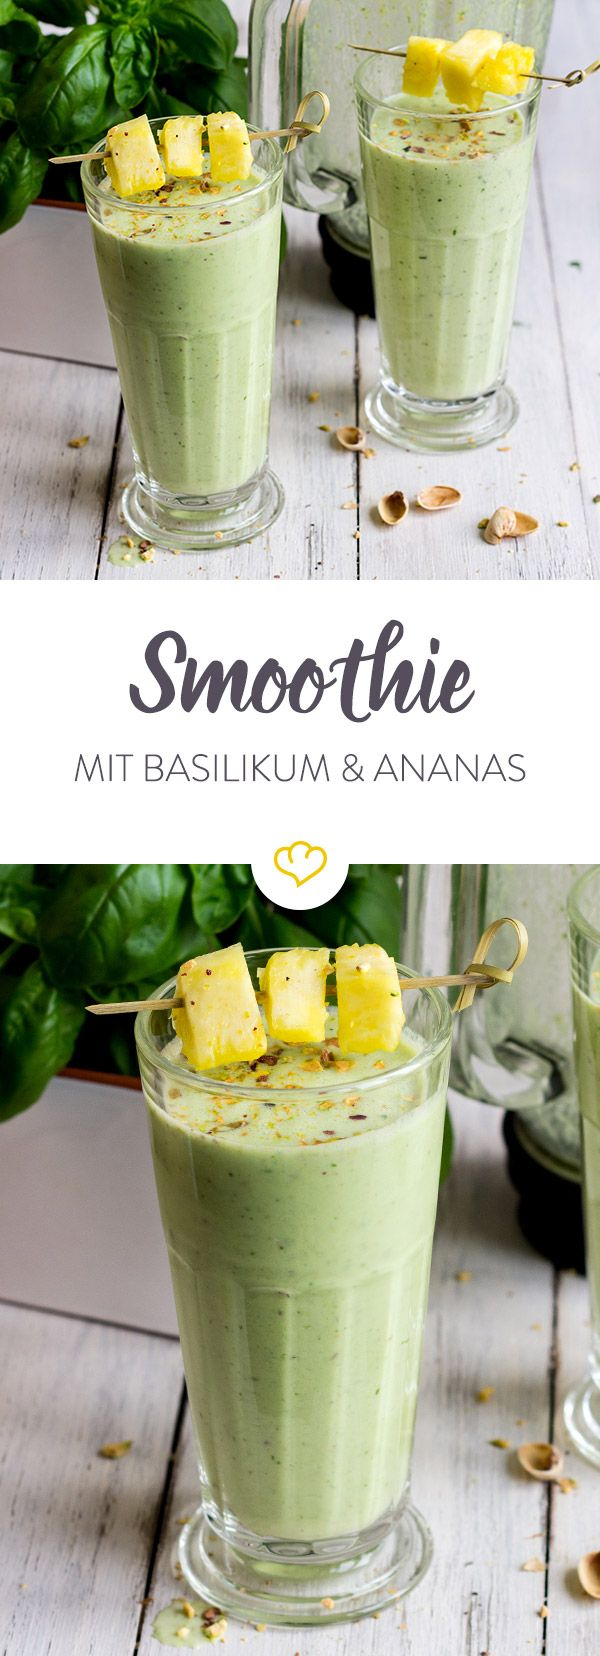 die besten 25 smoothie ideen auf pinterest gesunde shakes fr hst cks smoothies und gesunde. Black Bedroom Furniture Sets. Home Design Ideas